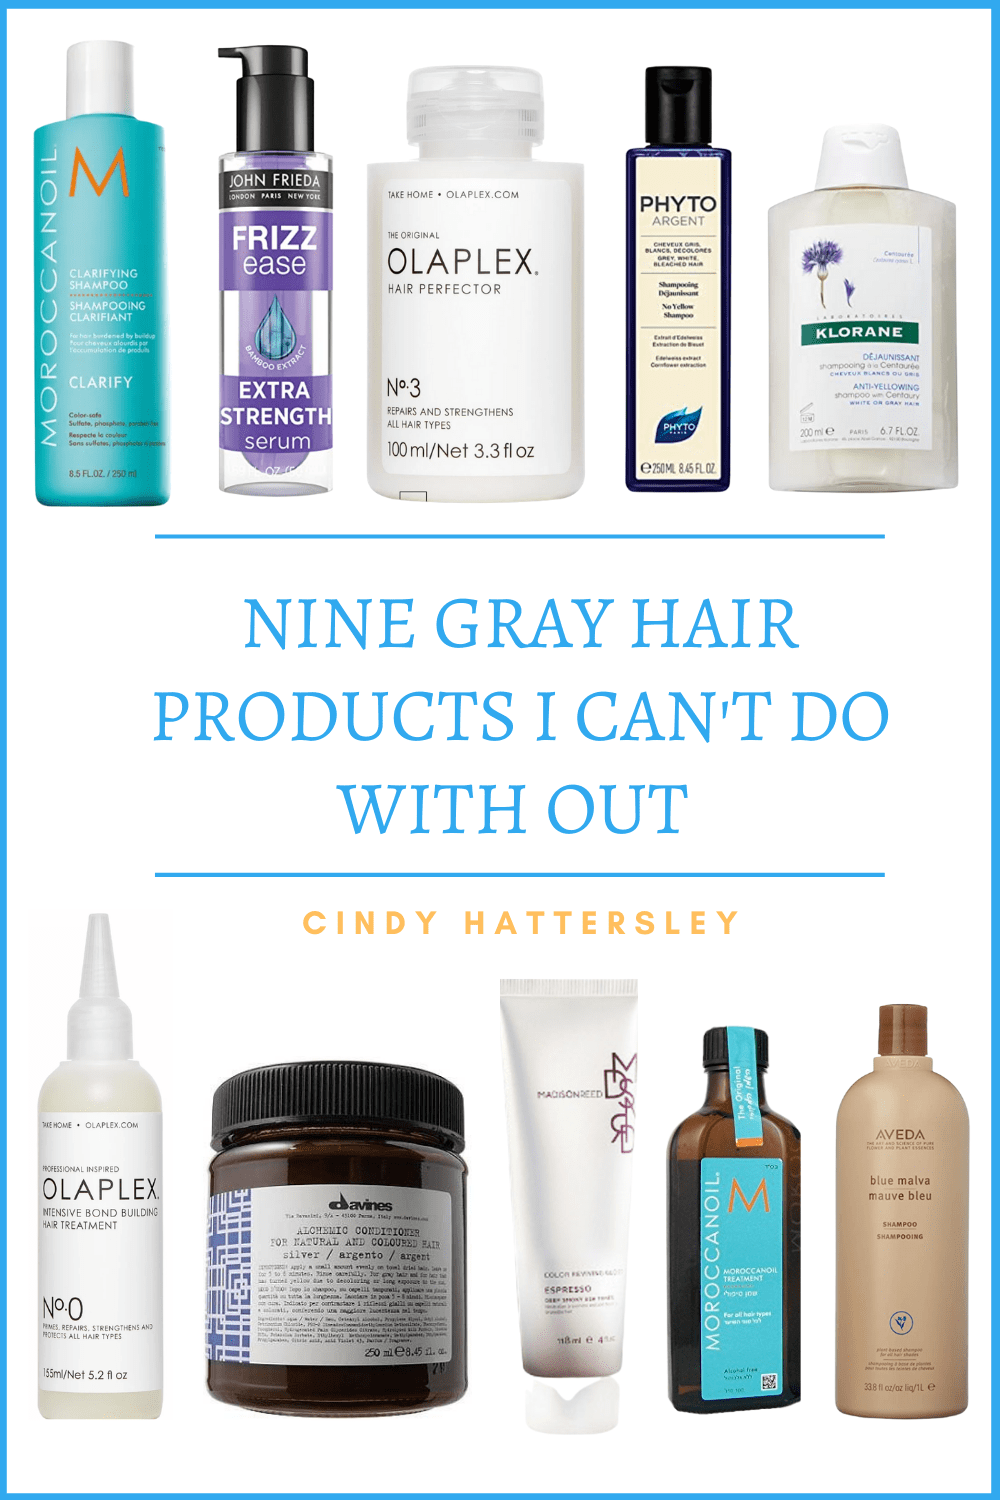 NINE GRAY HAIR PRODUCTS I CAN'T DO WITHOUT